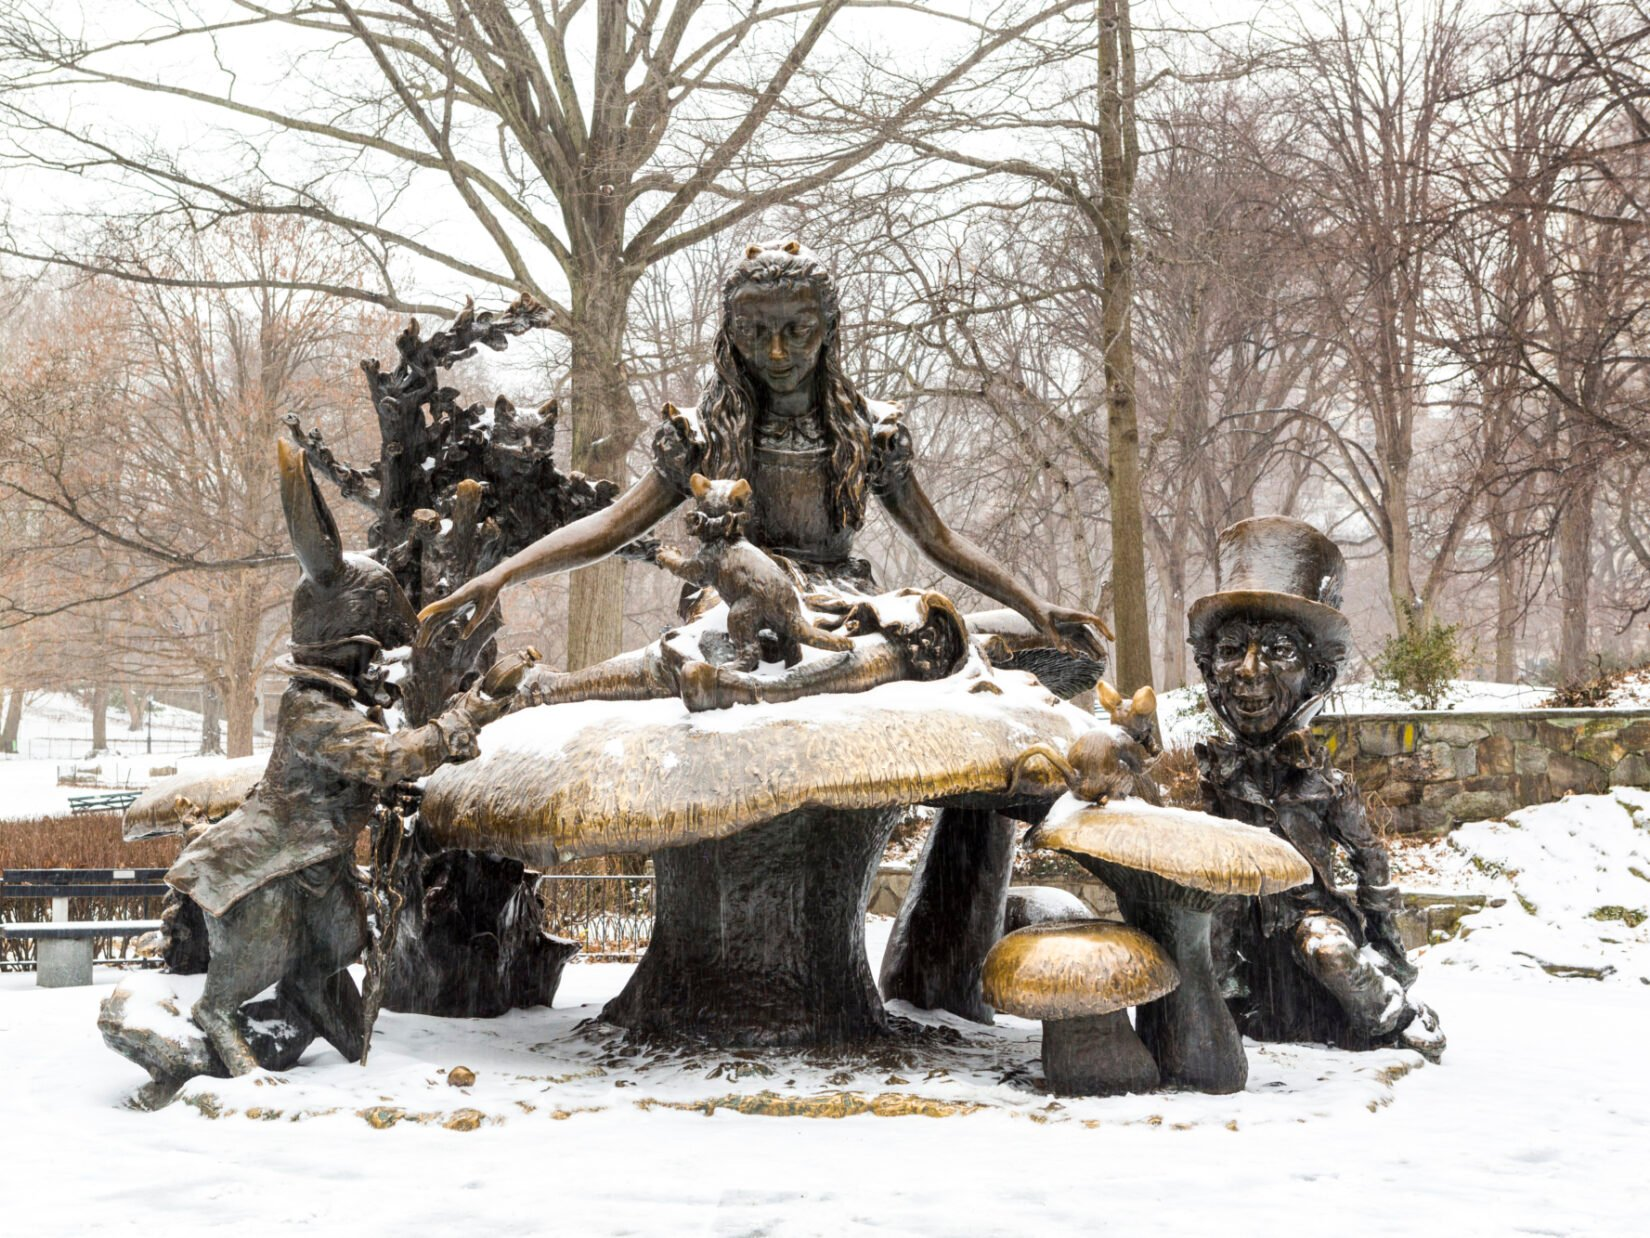 The Alice in Wonderland statue, depicted with winter snow